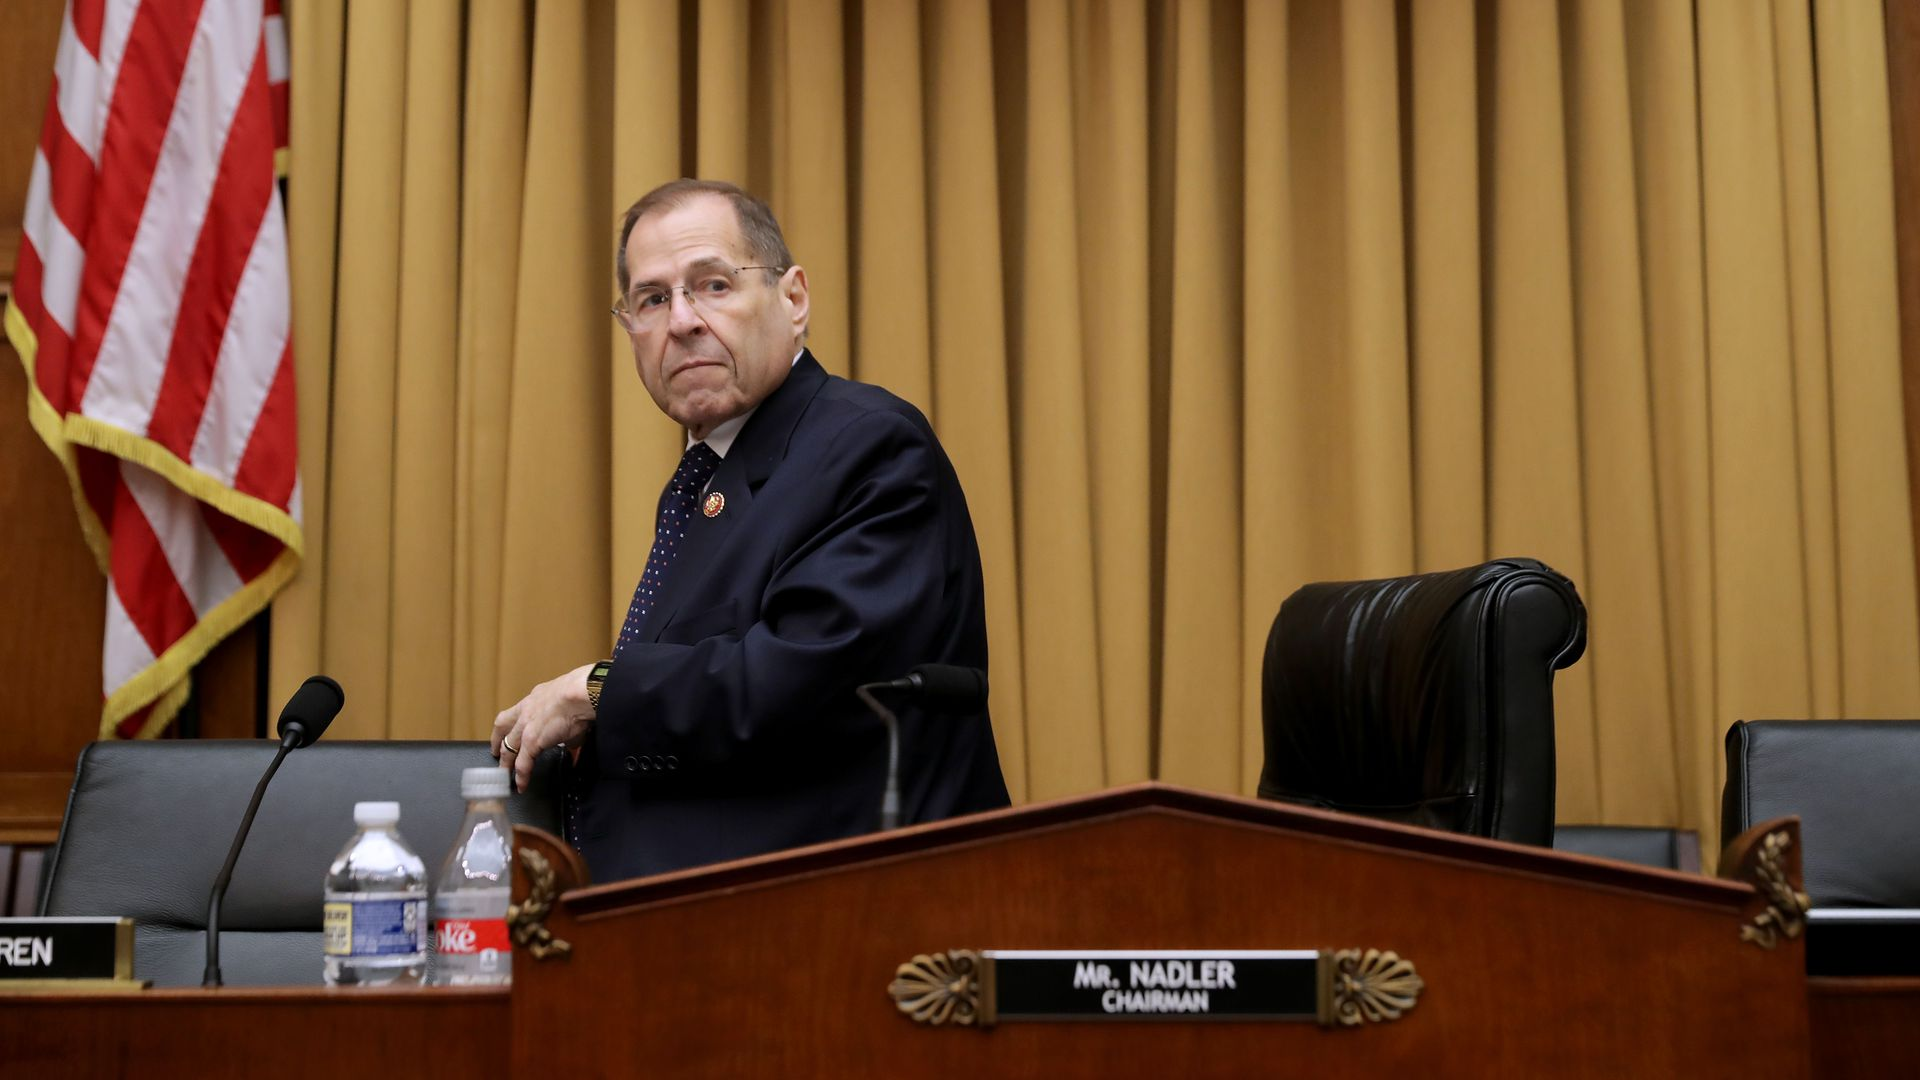 In this image, Nadler stands from his seat.